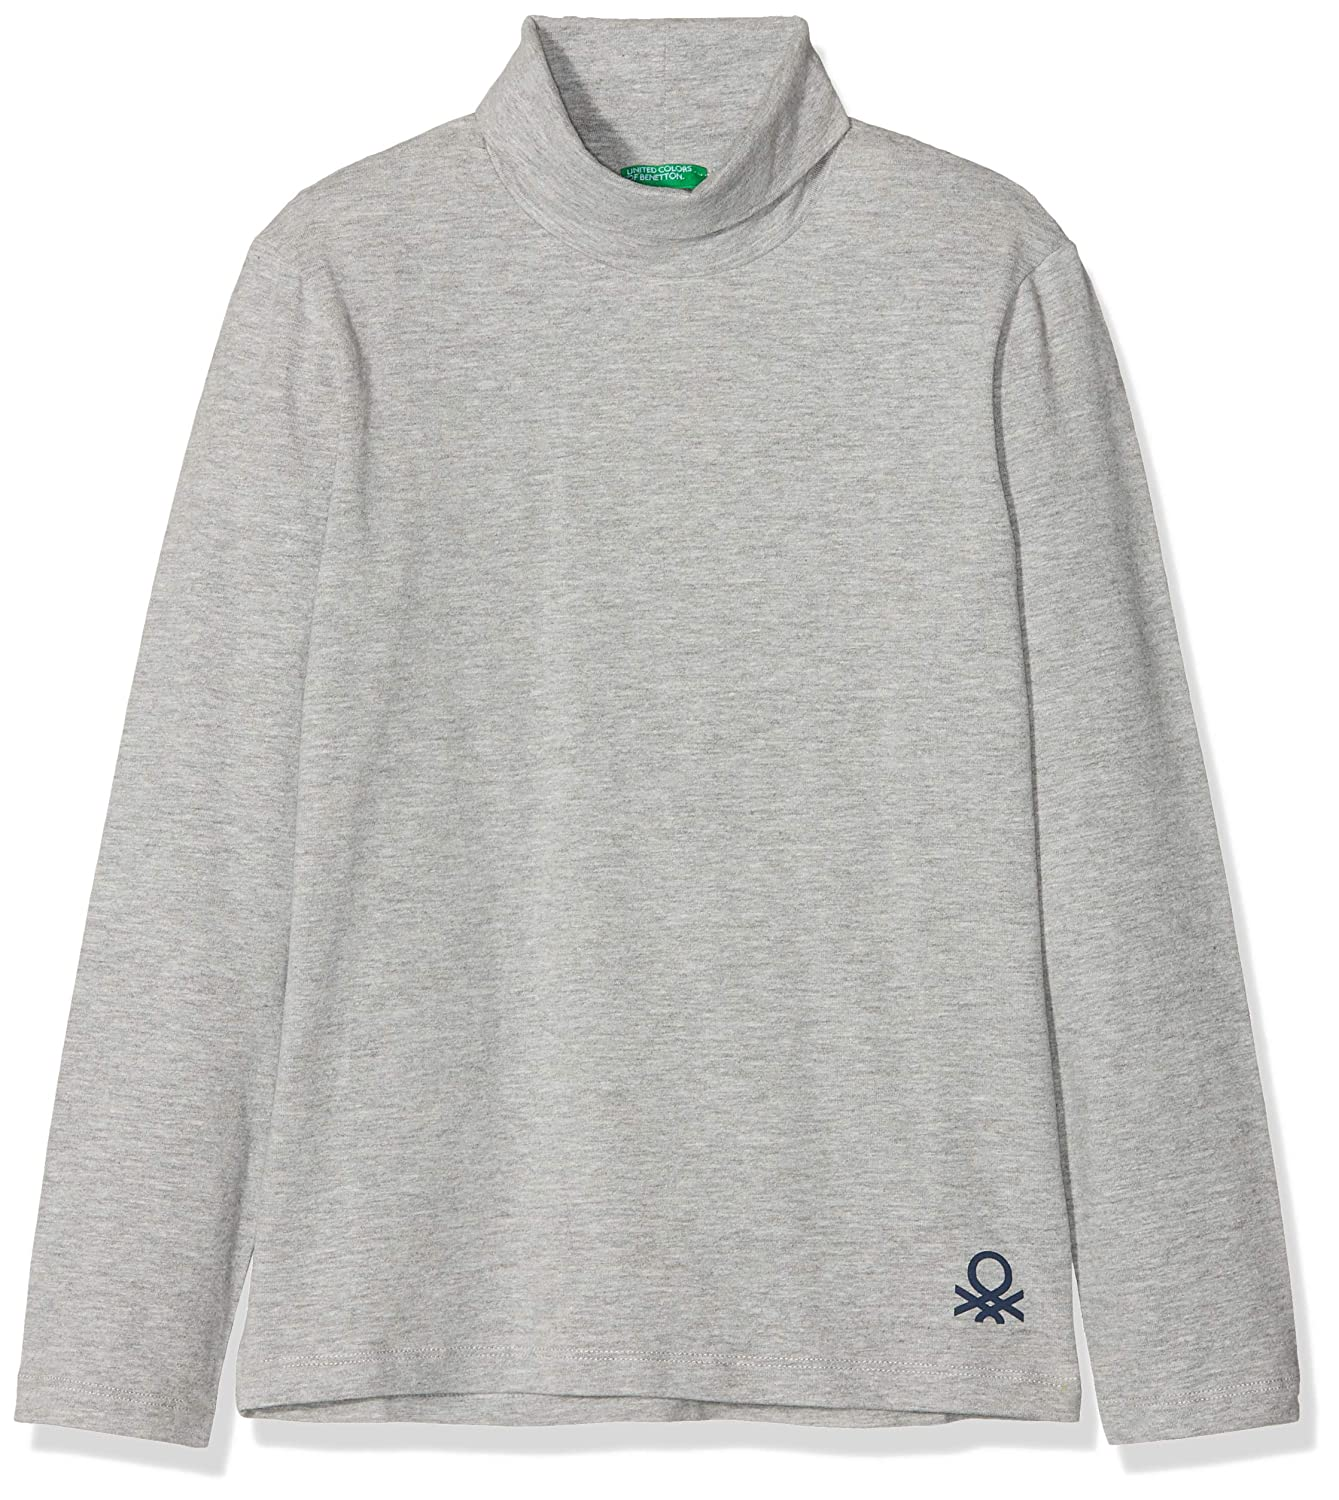 L//S United Colors of Benetton Jungen Pullover Turtle Neck Sw